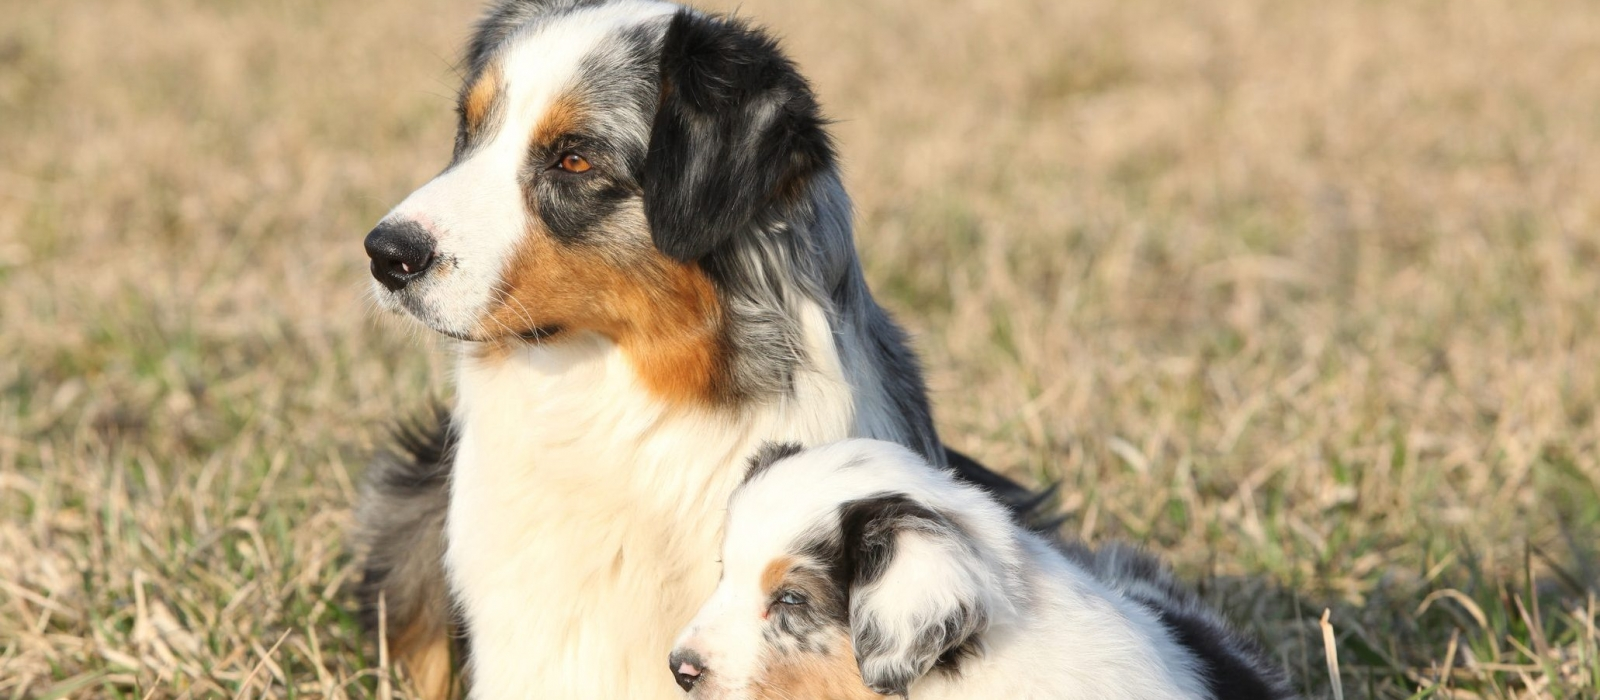 Miniature Australian Shepherd Puppies For Sale | Greenfield